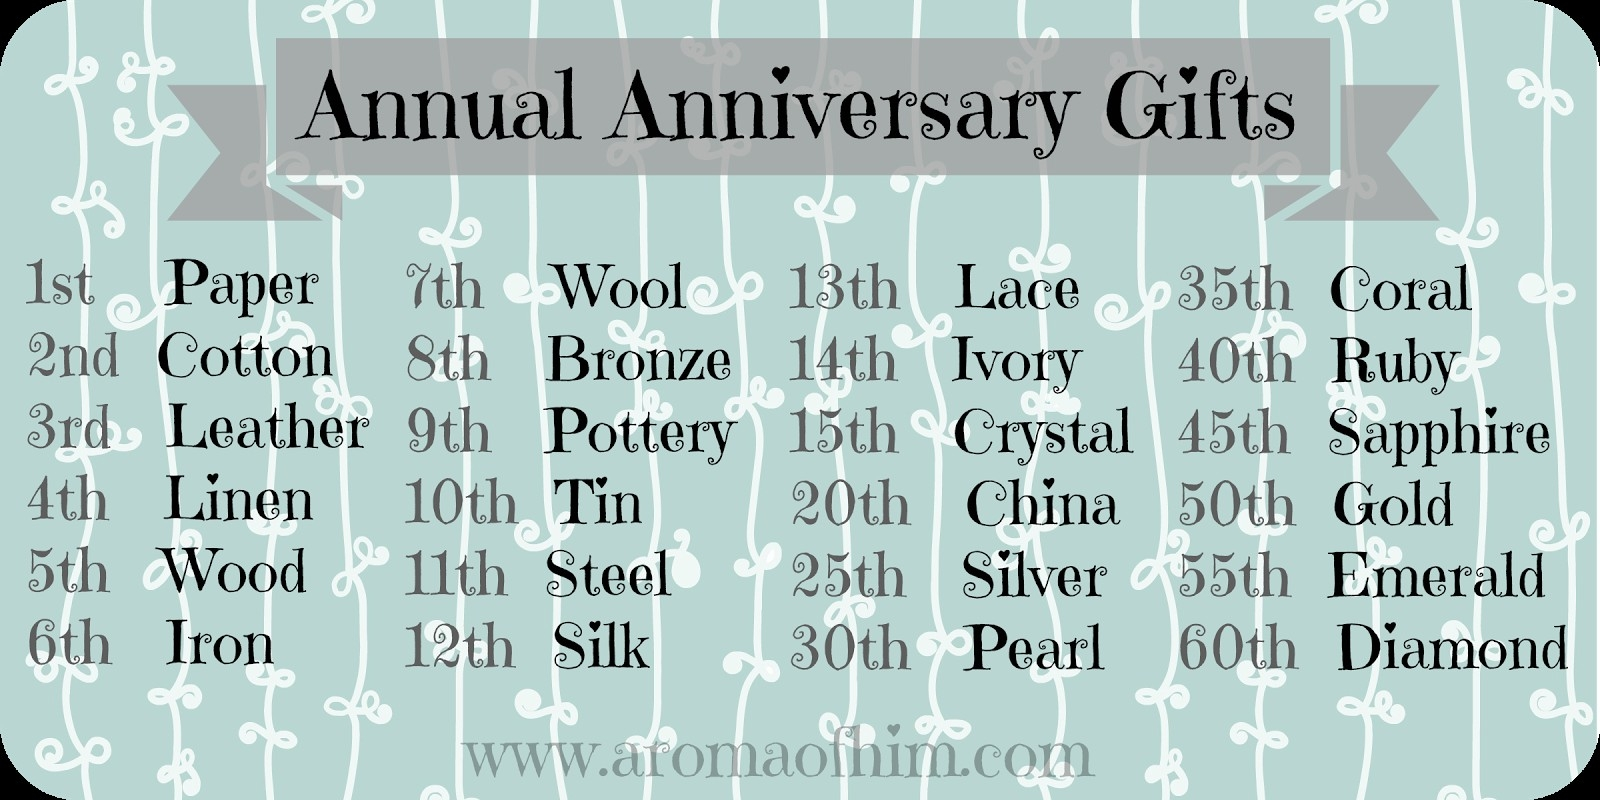 10 Amazing 15 Year Wedding Anniversary Gift Ideas 15 wedding anniversary gifts for him best of new 2nd year wedding 5 2021